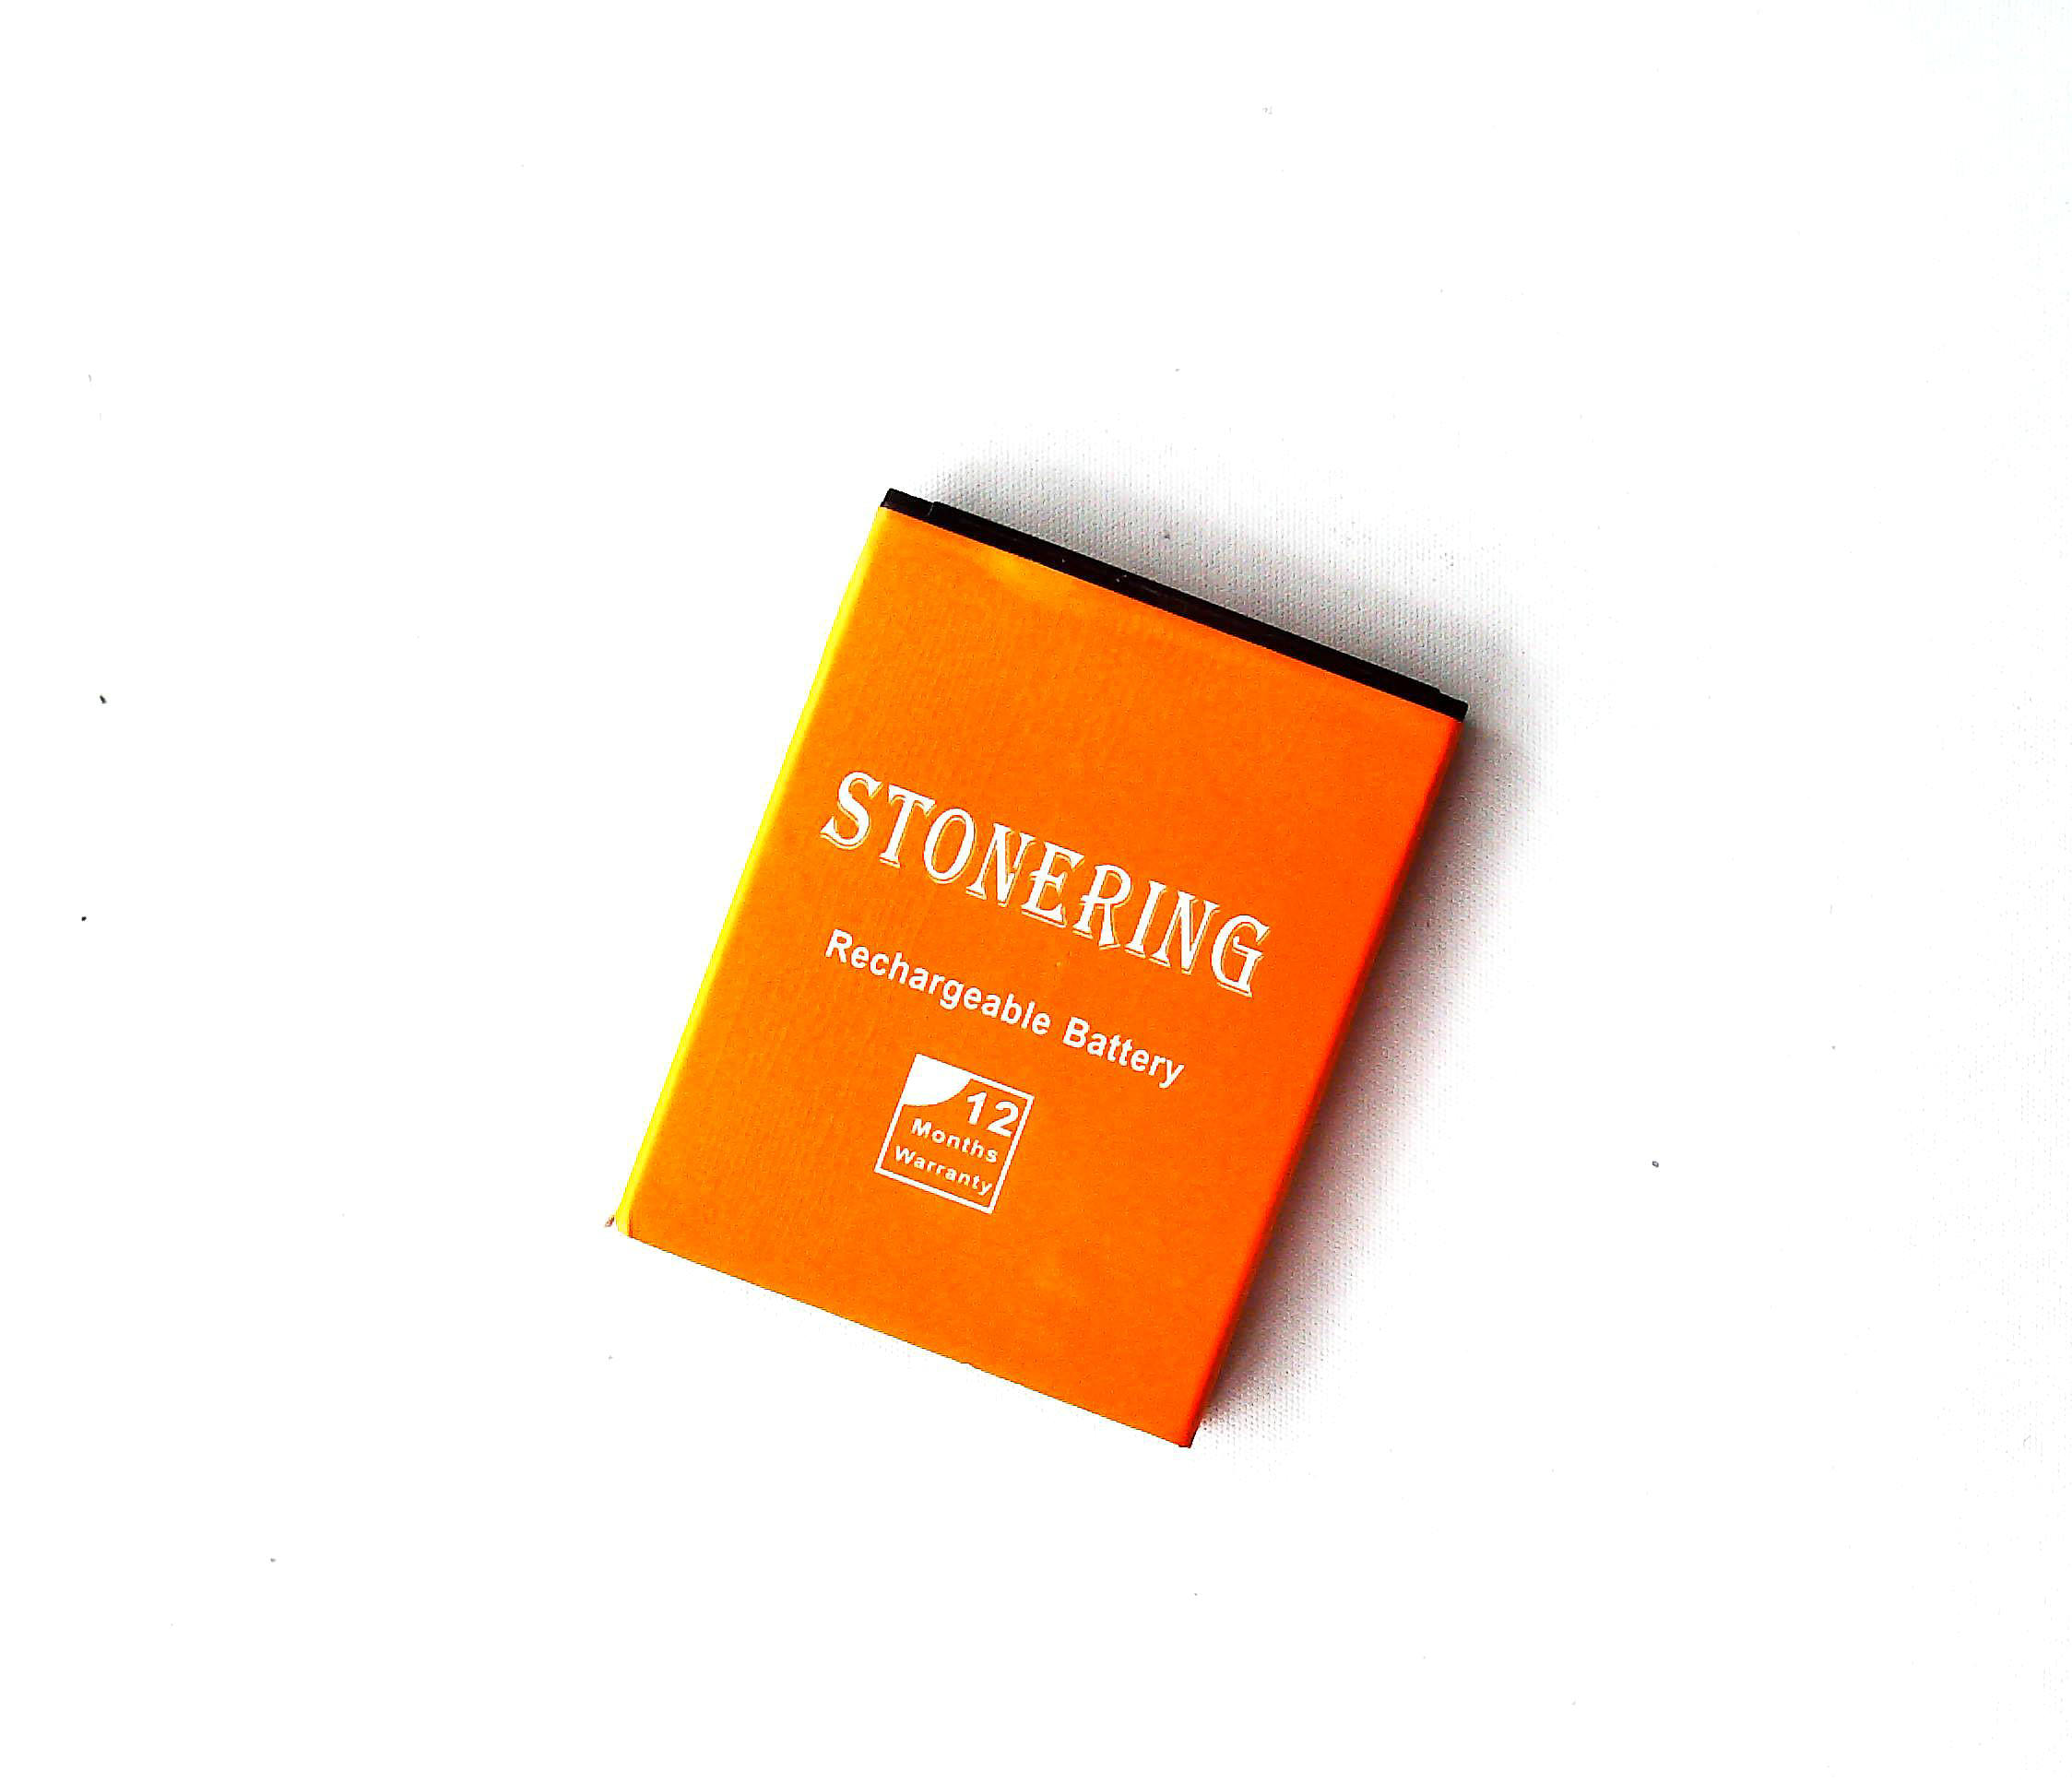 Stonering 1600mAh BL4505 Battery for FLY Ezzy 5/Ezzy Trendy 2/TS90/TS91/DS103D/Ezzy Flip/Ezzy Trendy/DS106d Cellphone